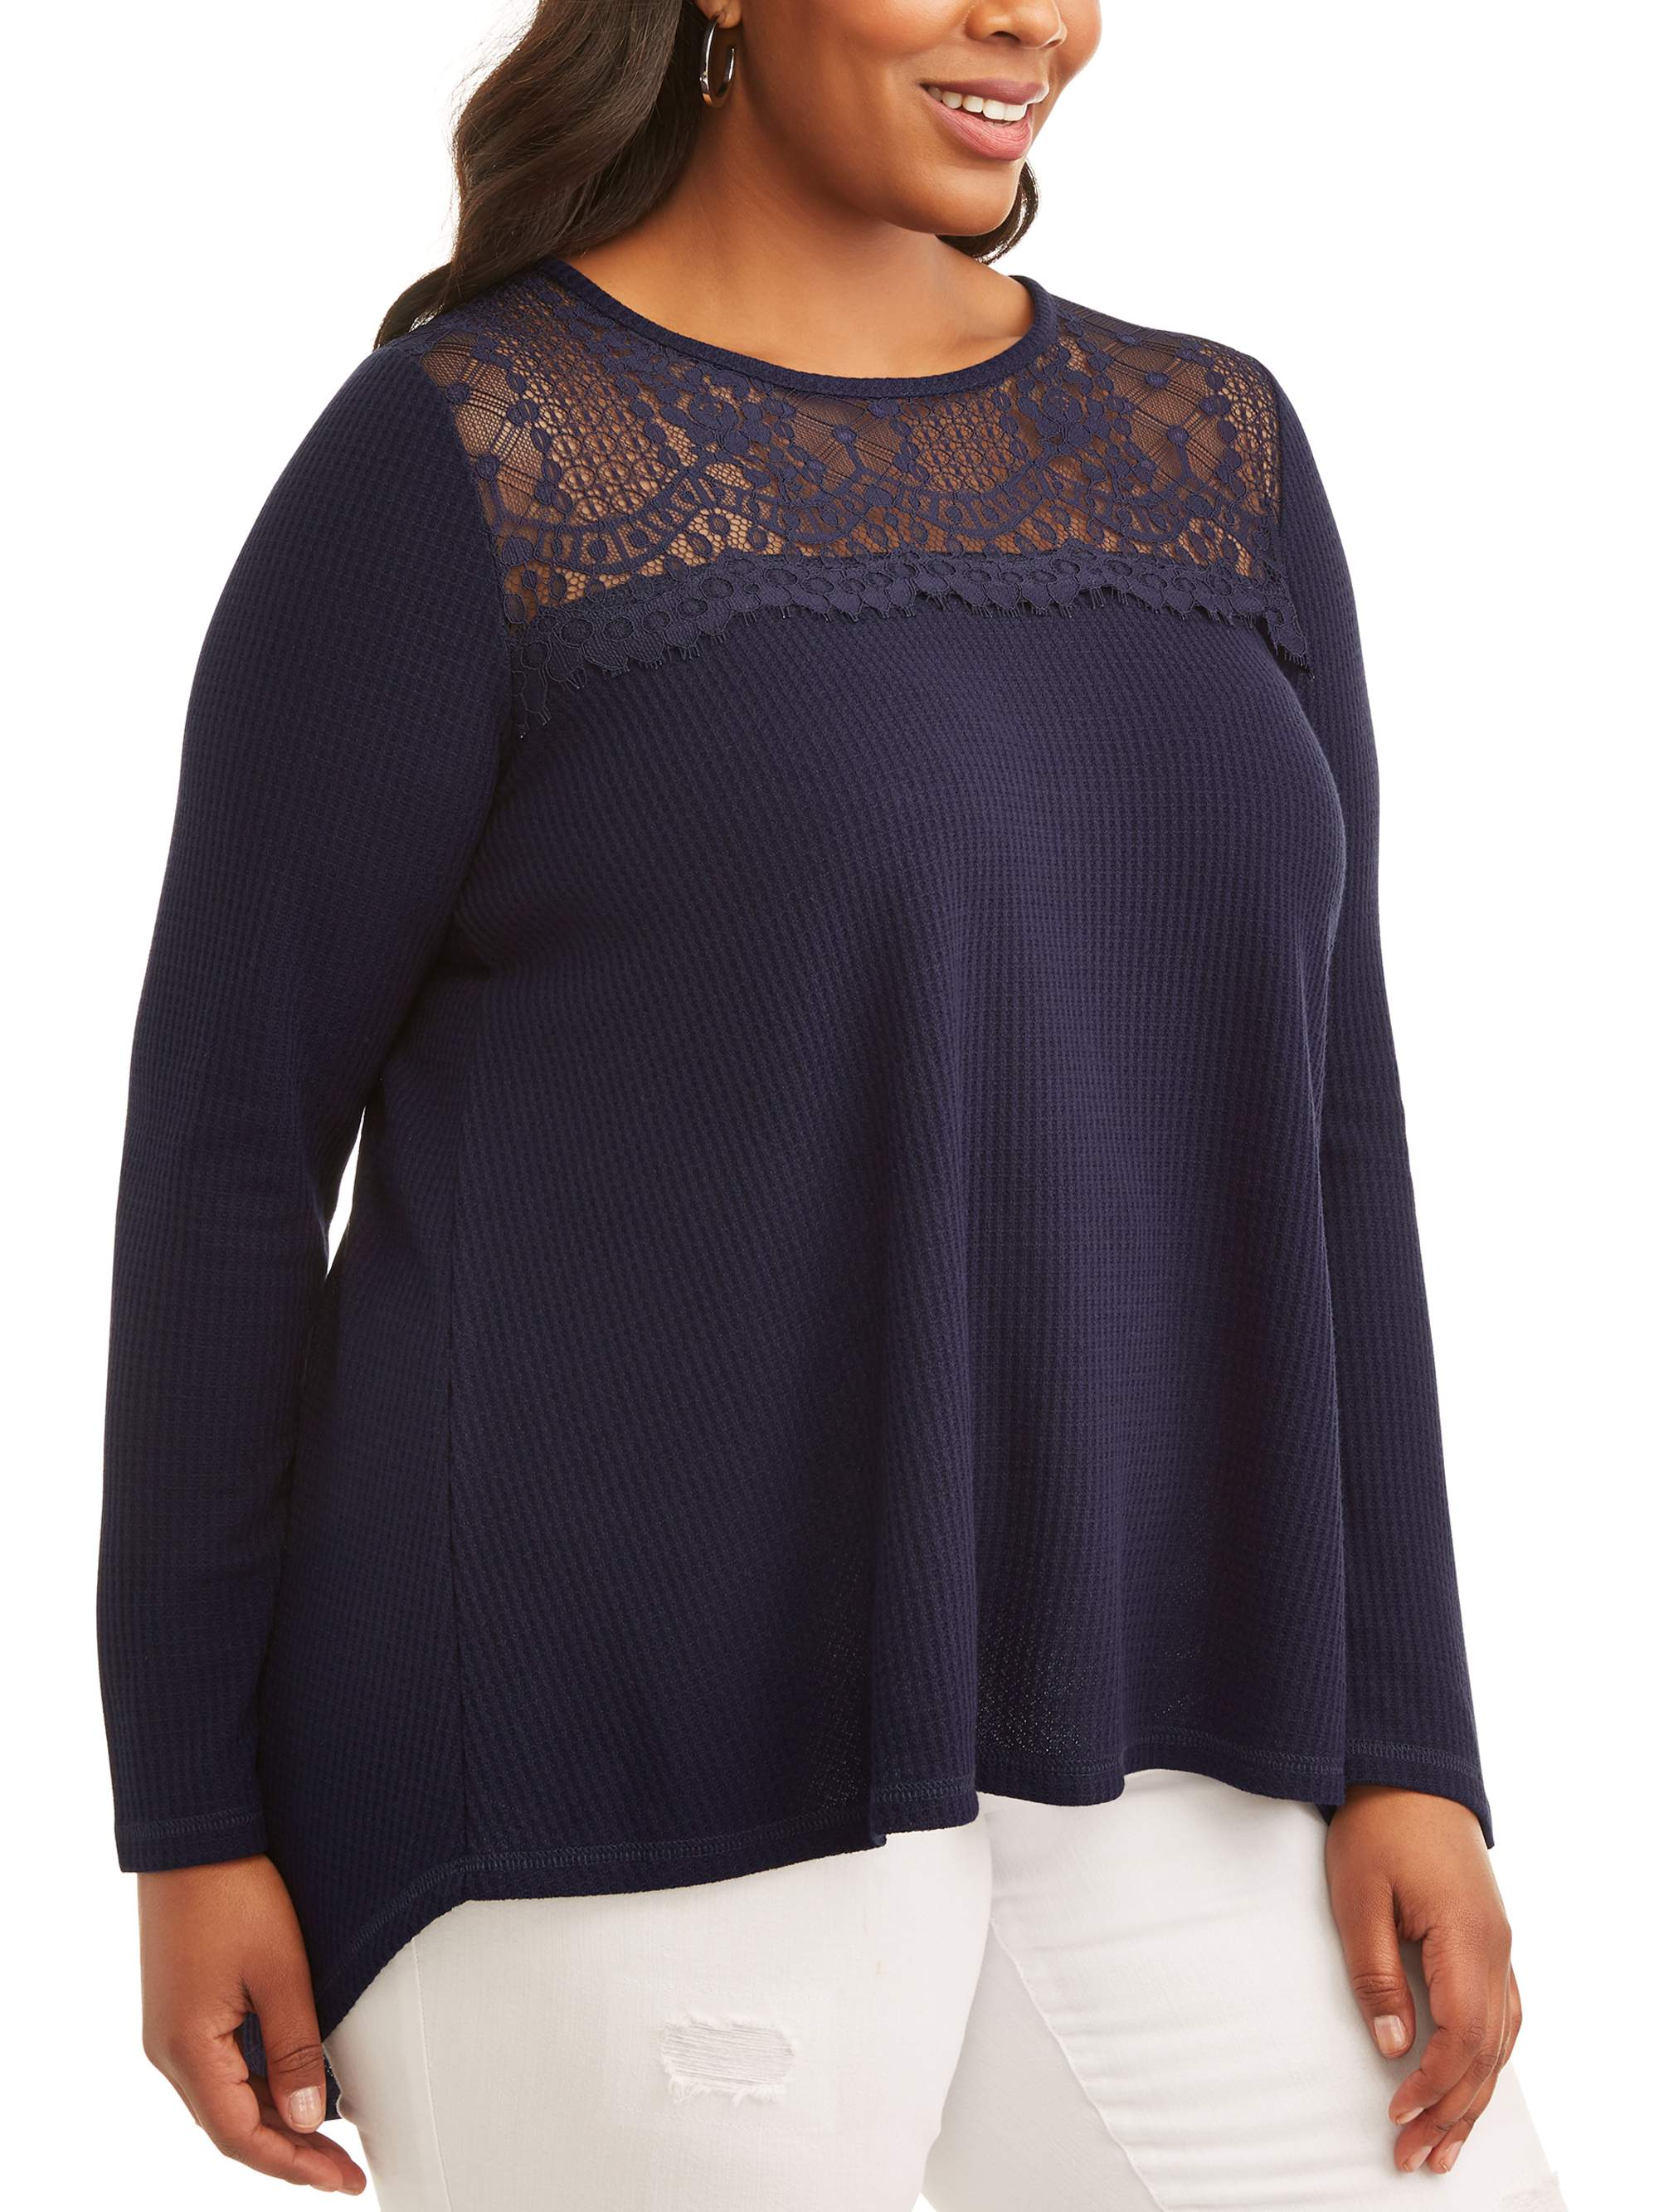 Women's Plus Scoop Neck Top with Lace Yoke